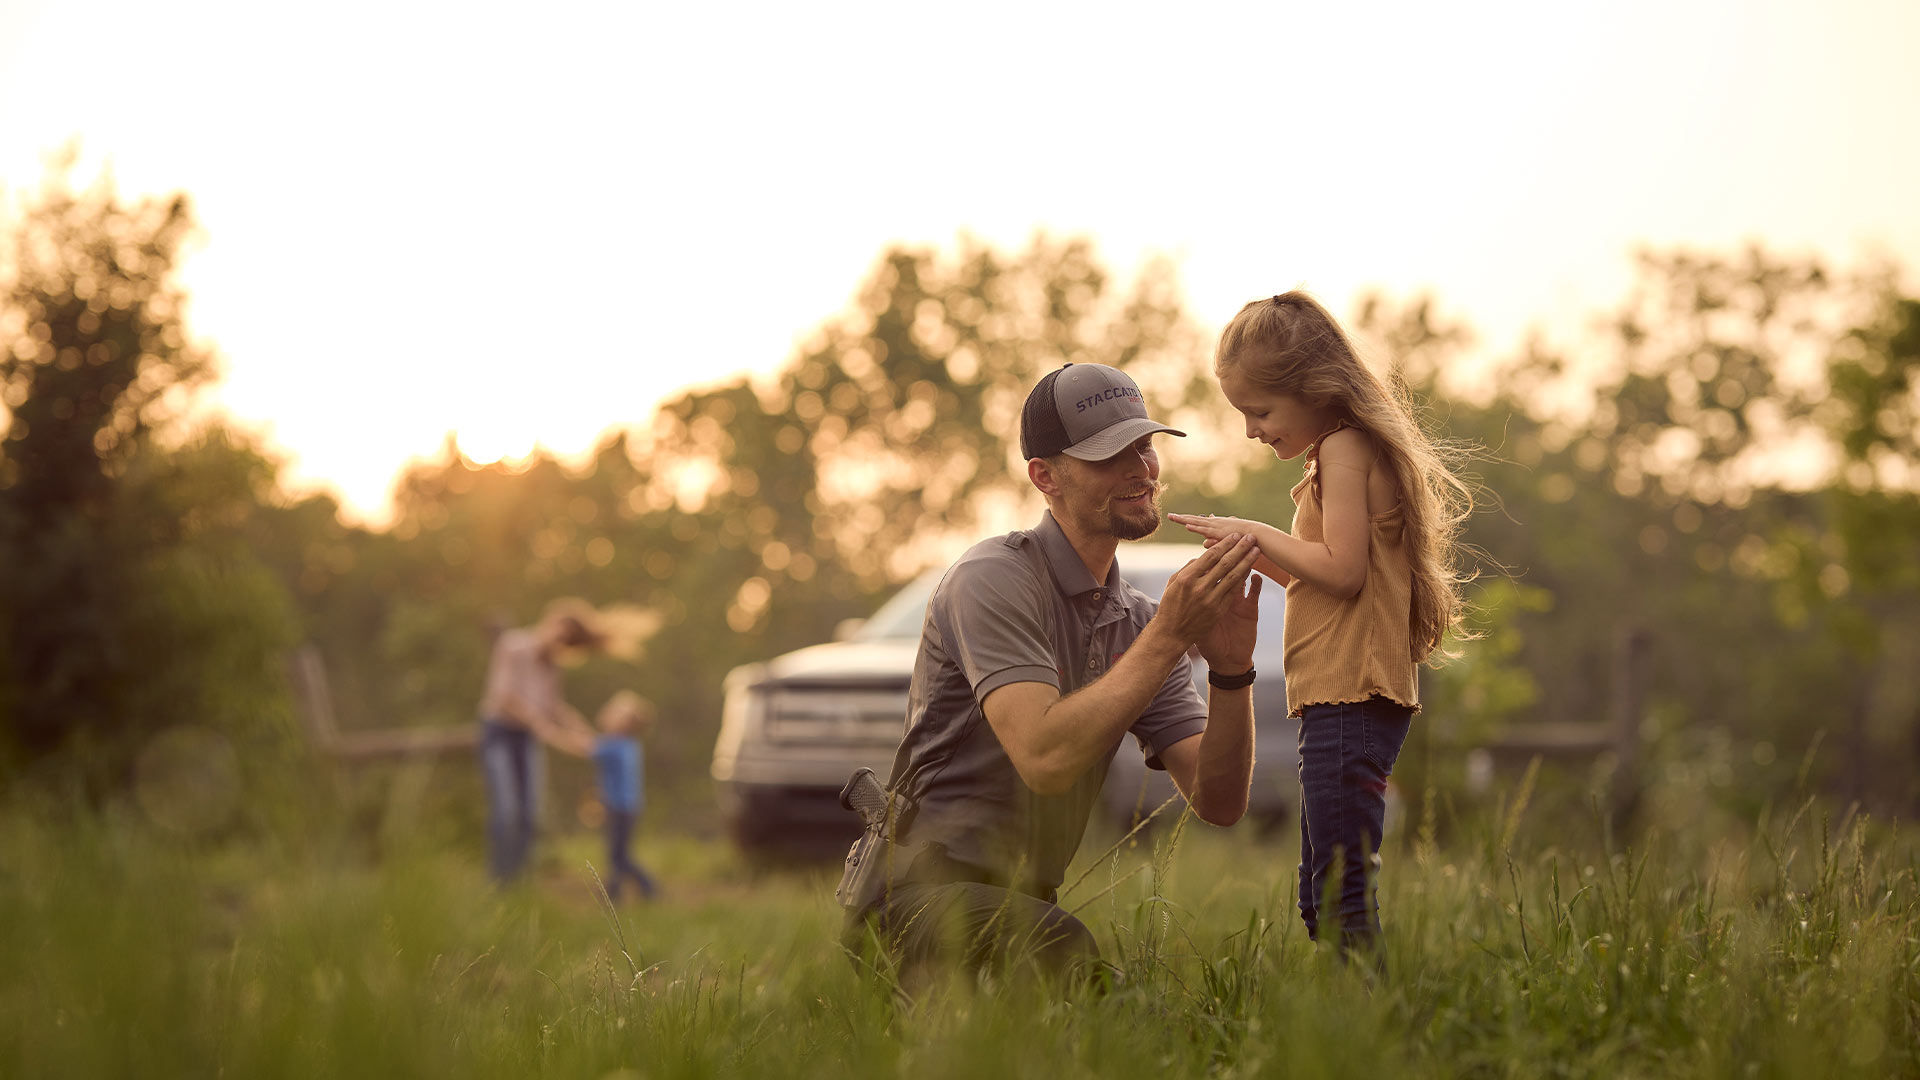 Father, with holstered Staccato handgun, smiling at his daughter